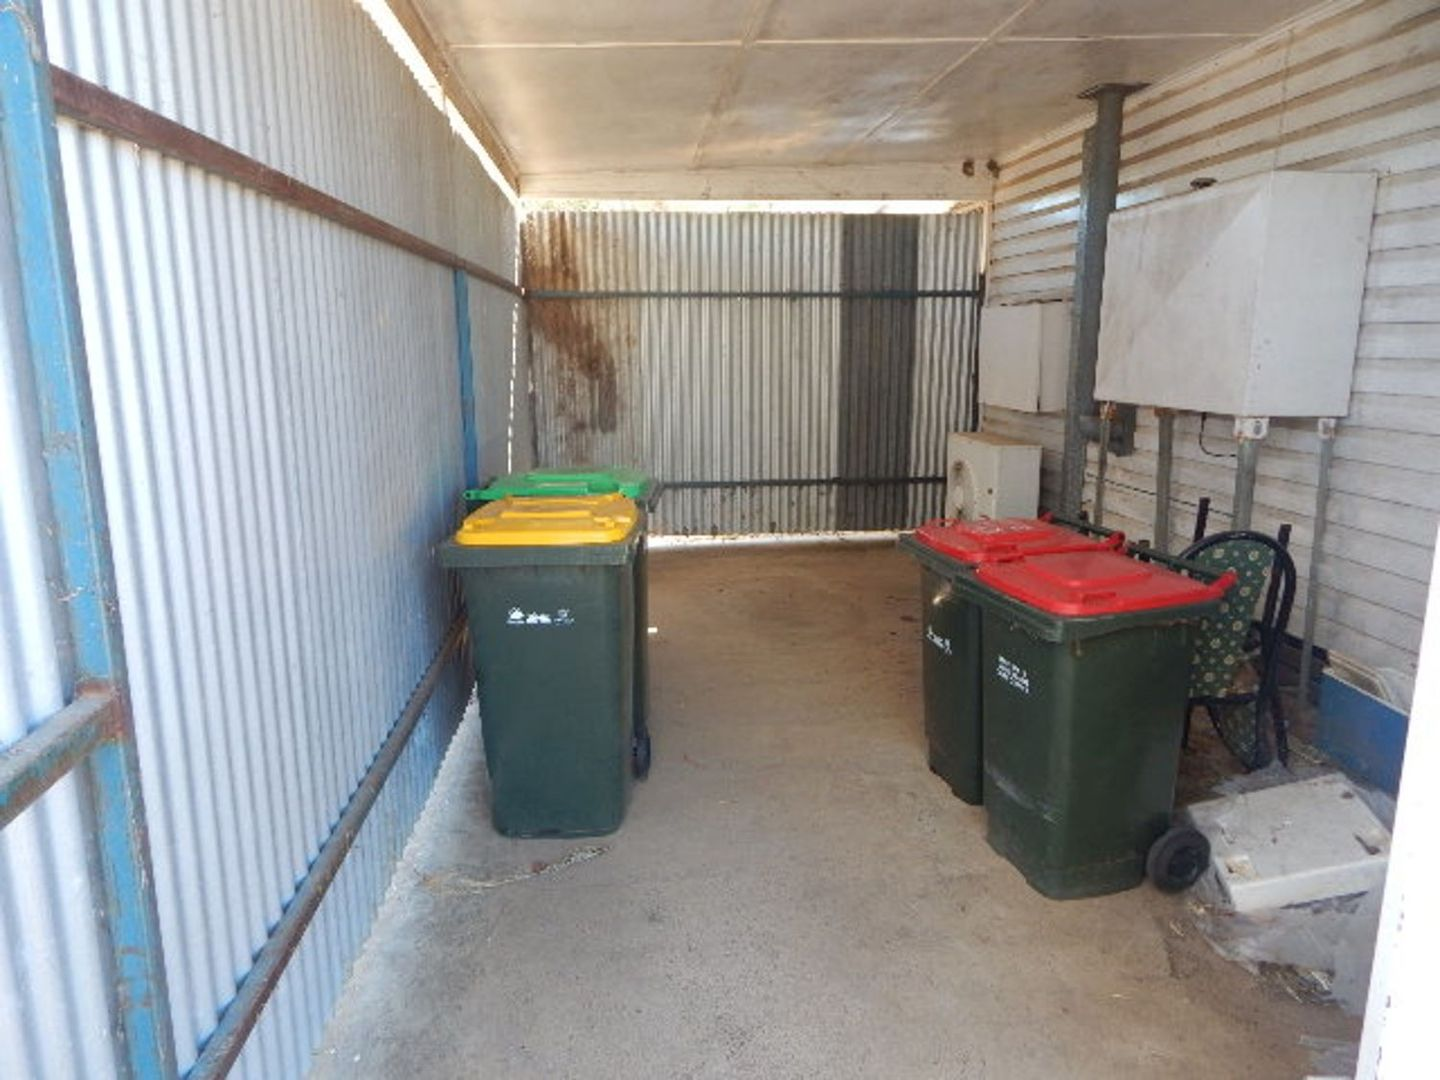 73 Anne Street, Moree NSW 2400, Image 2